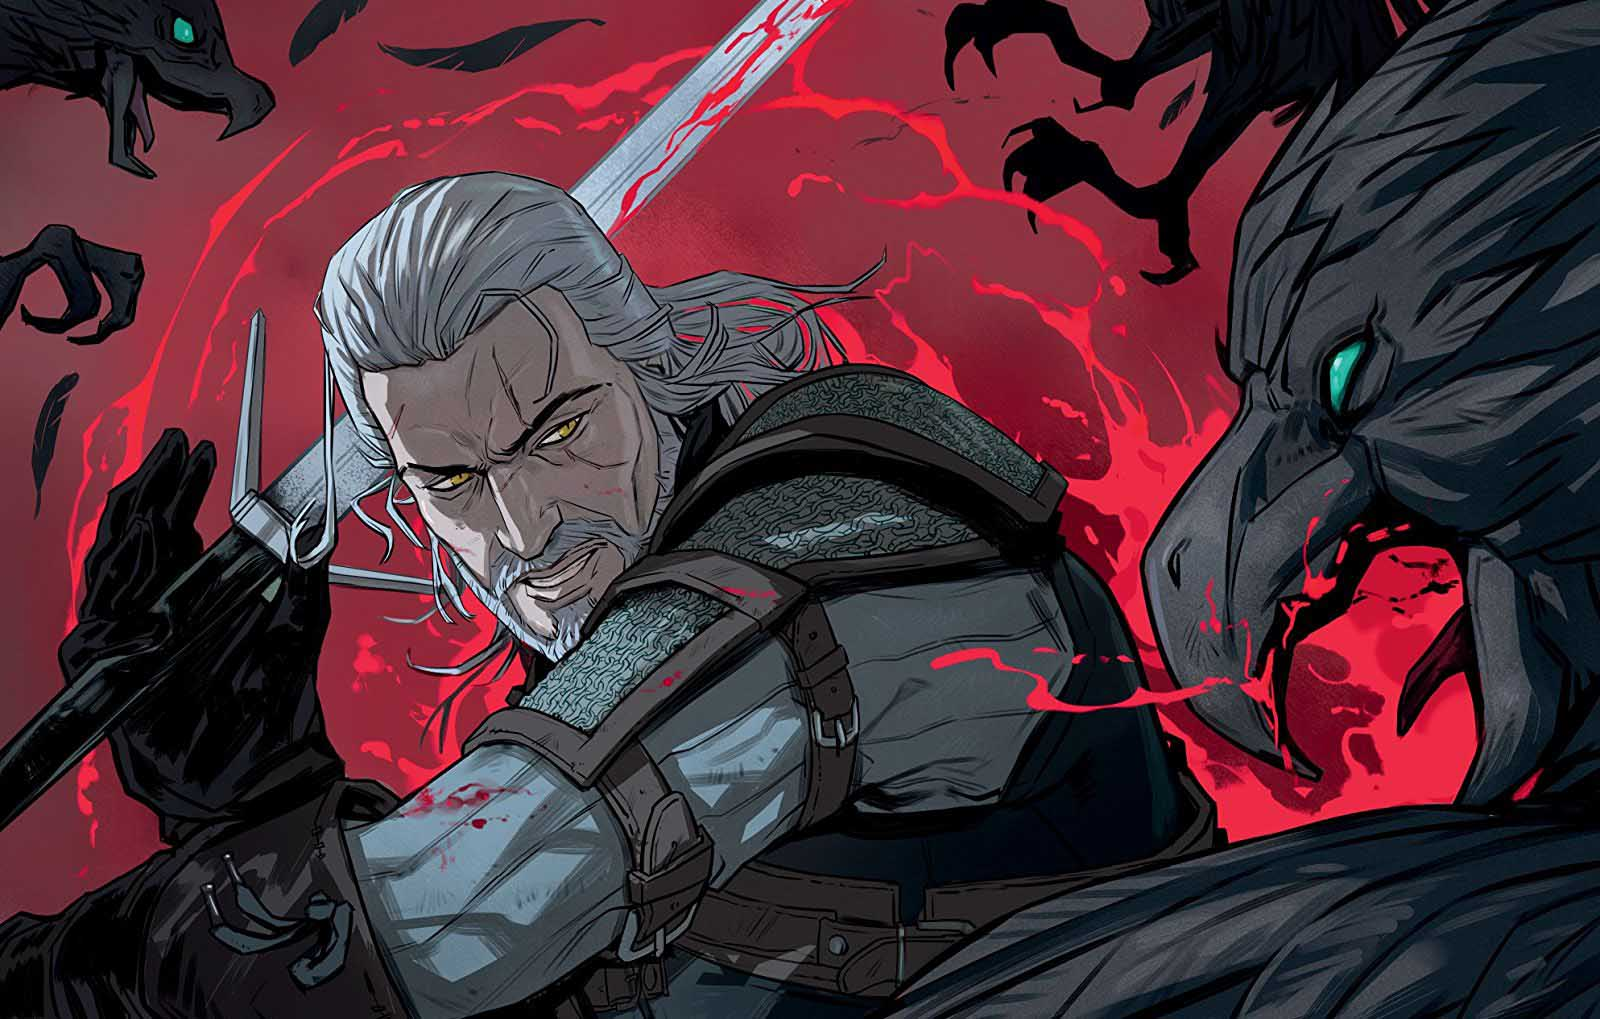 The Witcher tendrá una película anime en Netflix 2